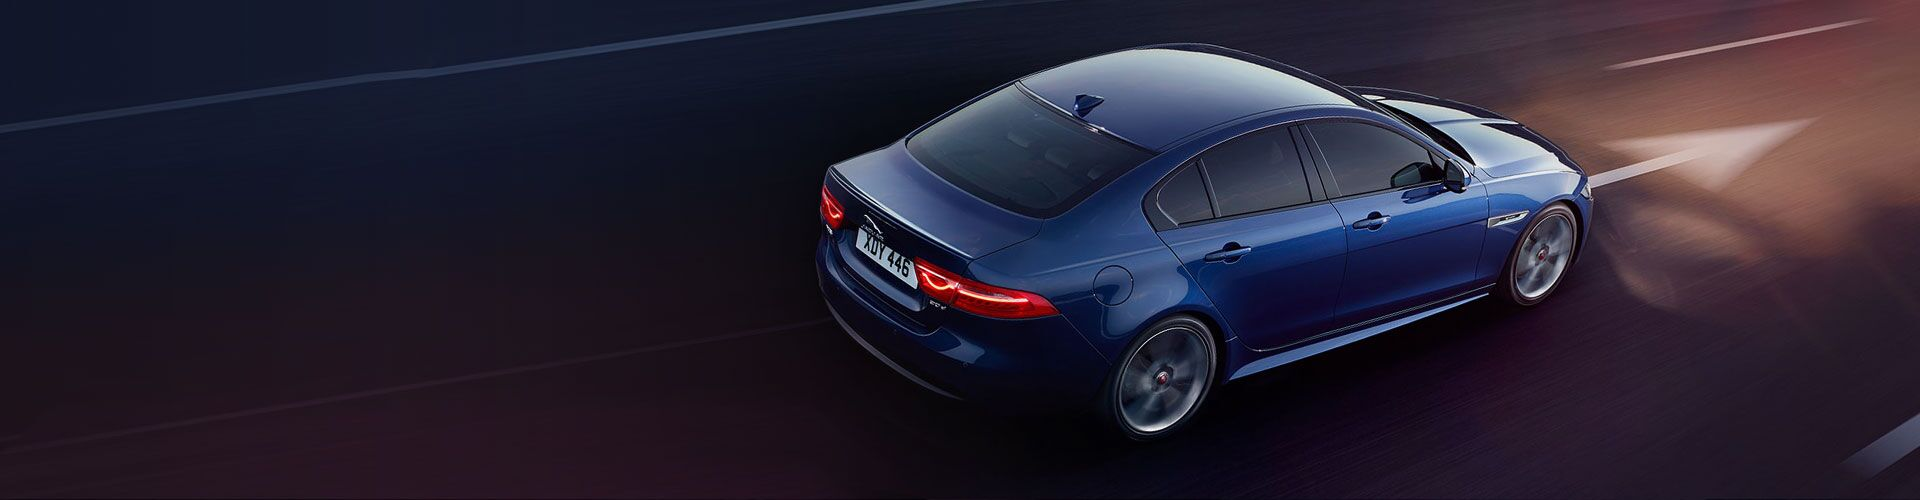 New Jaguar XE at Jaguar Fairfield